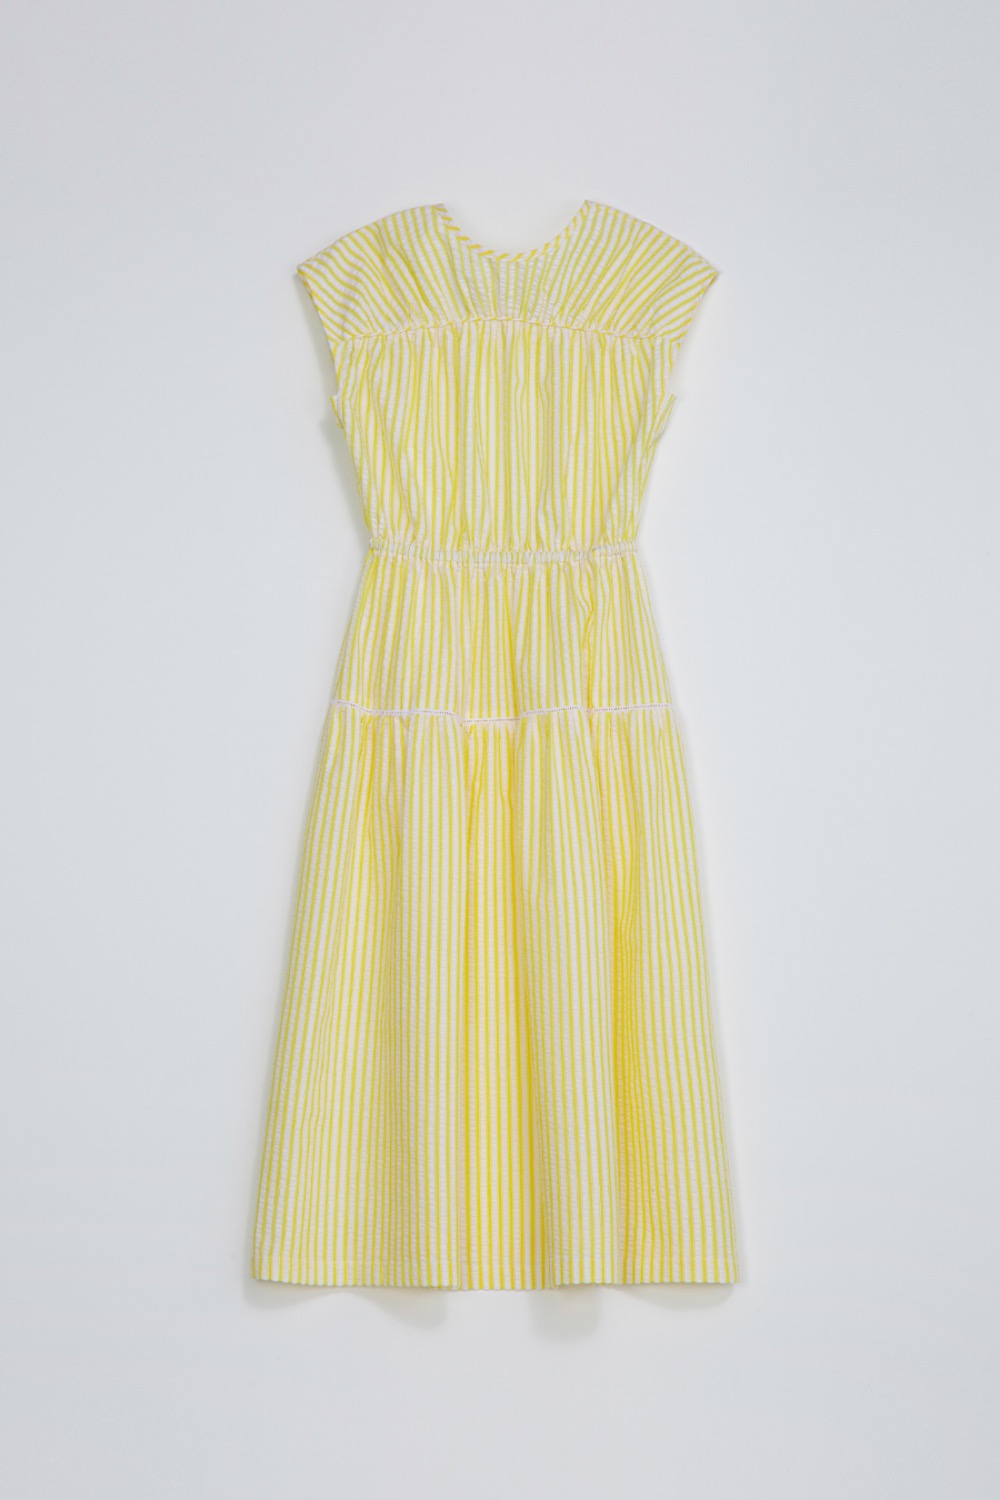 DE CUT-OUT DRESS - LEMON SEERSUCKER